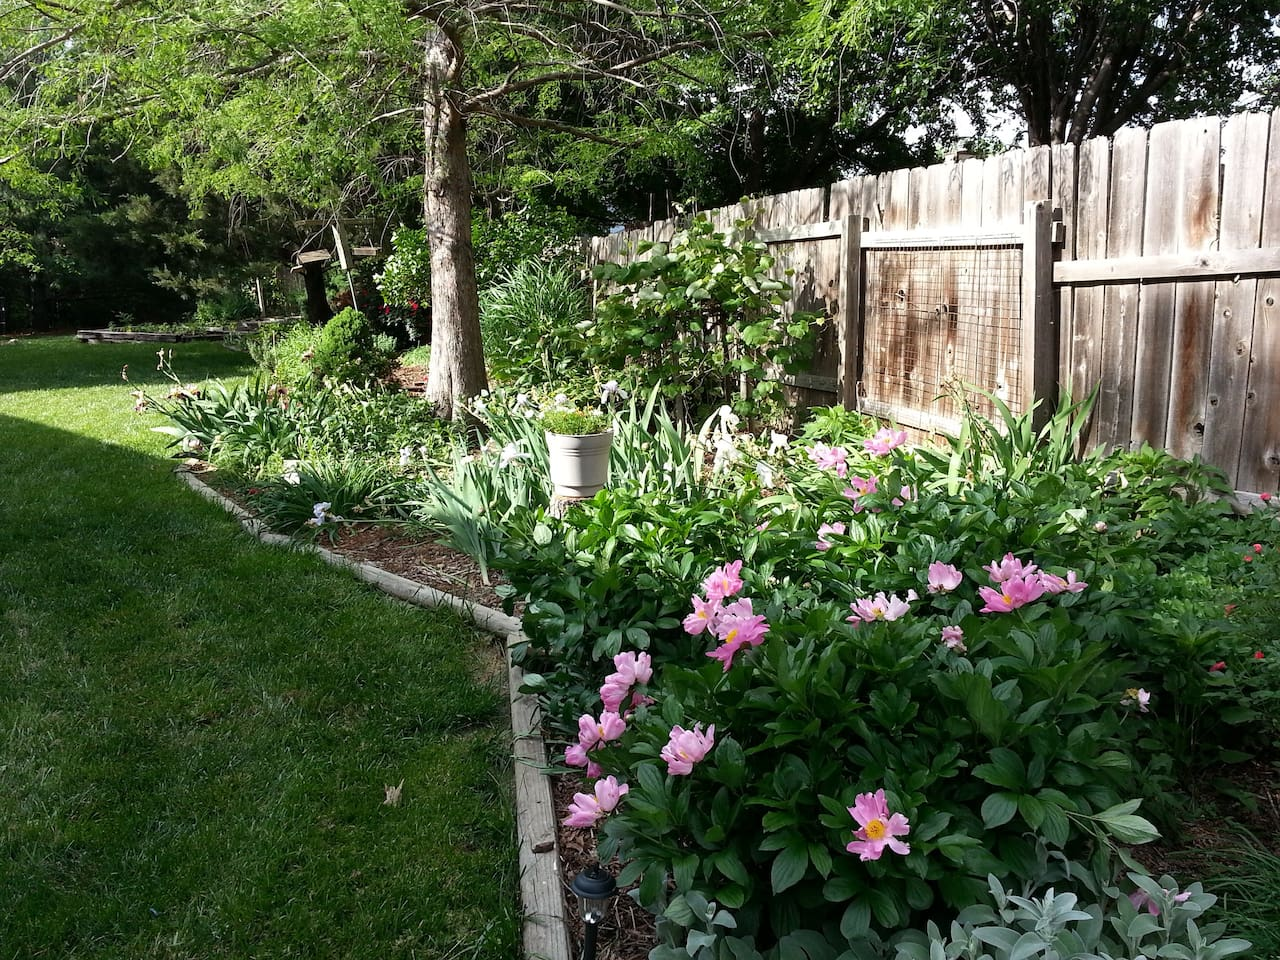 Our beautiful garden, a great spot to relax and smell the roses.